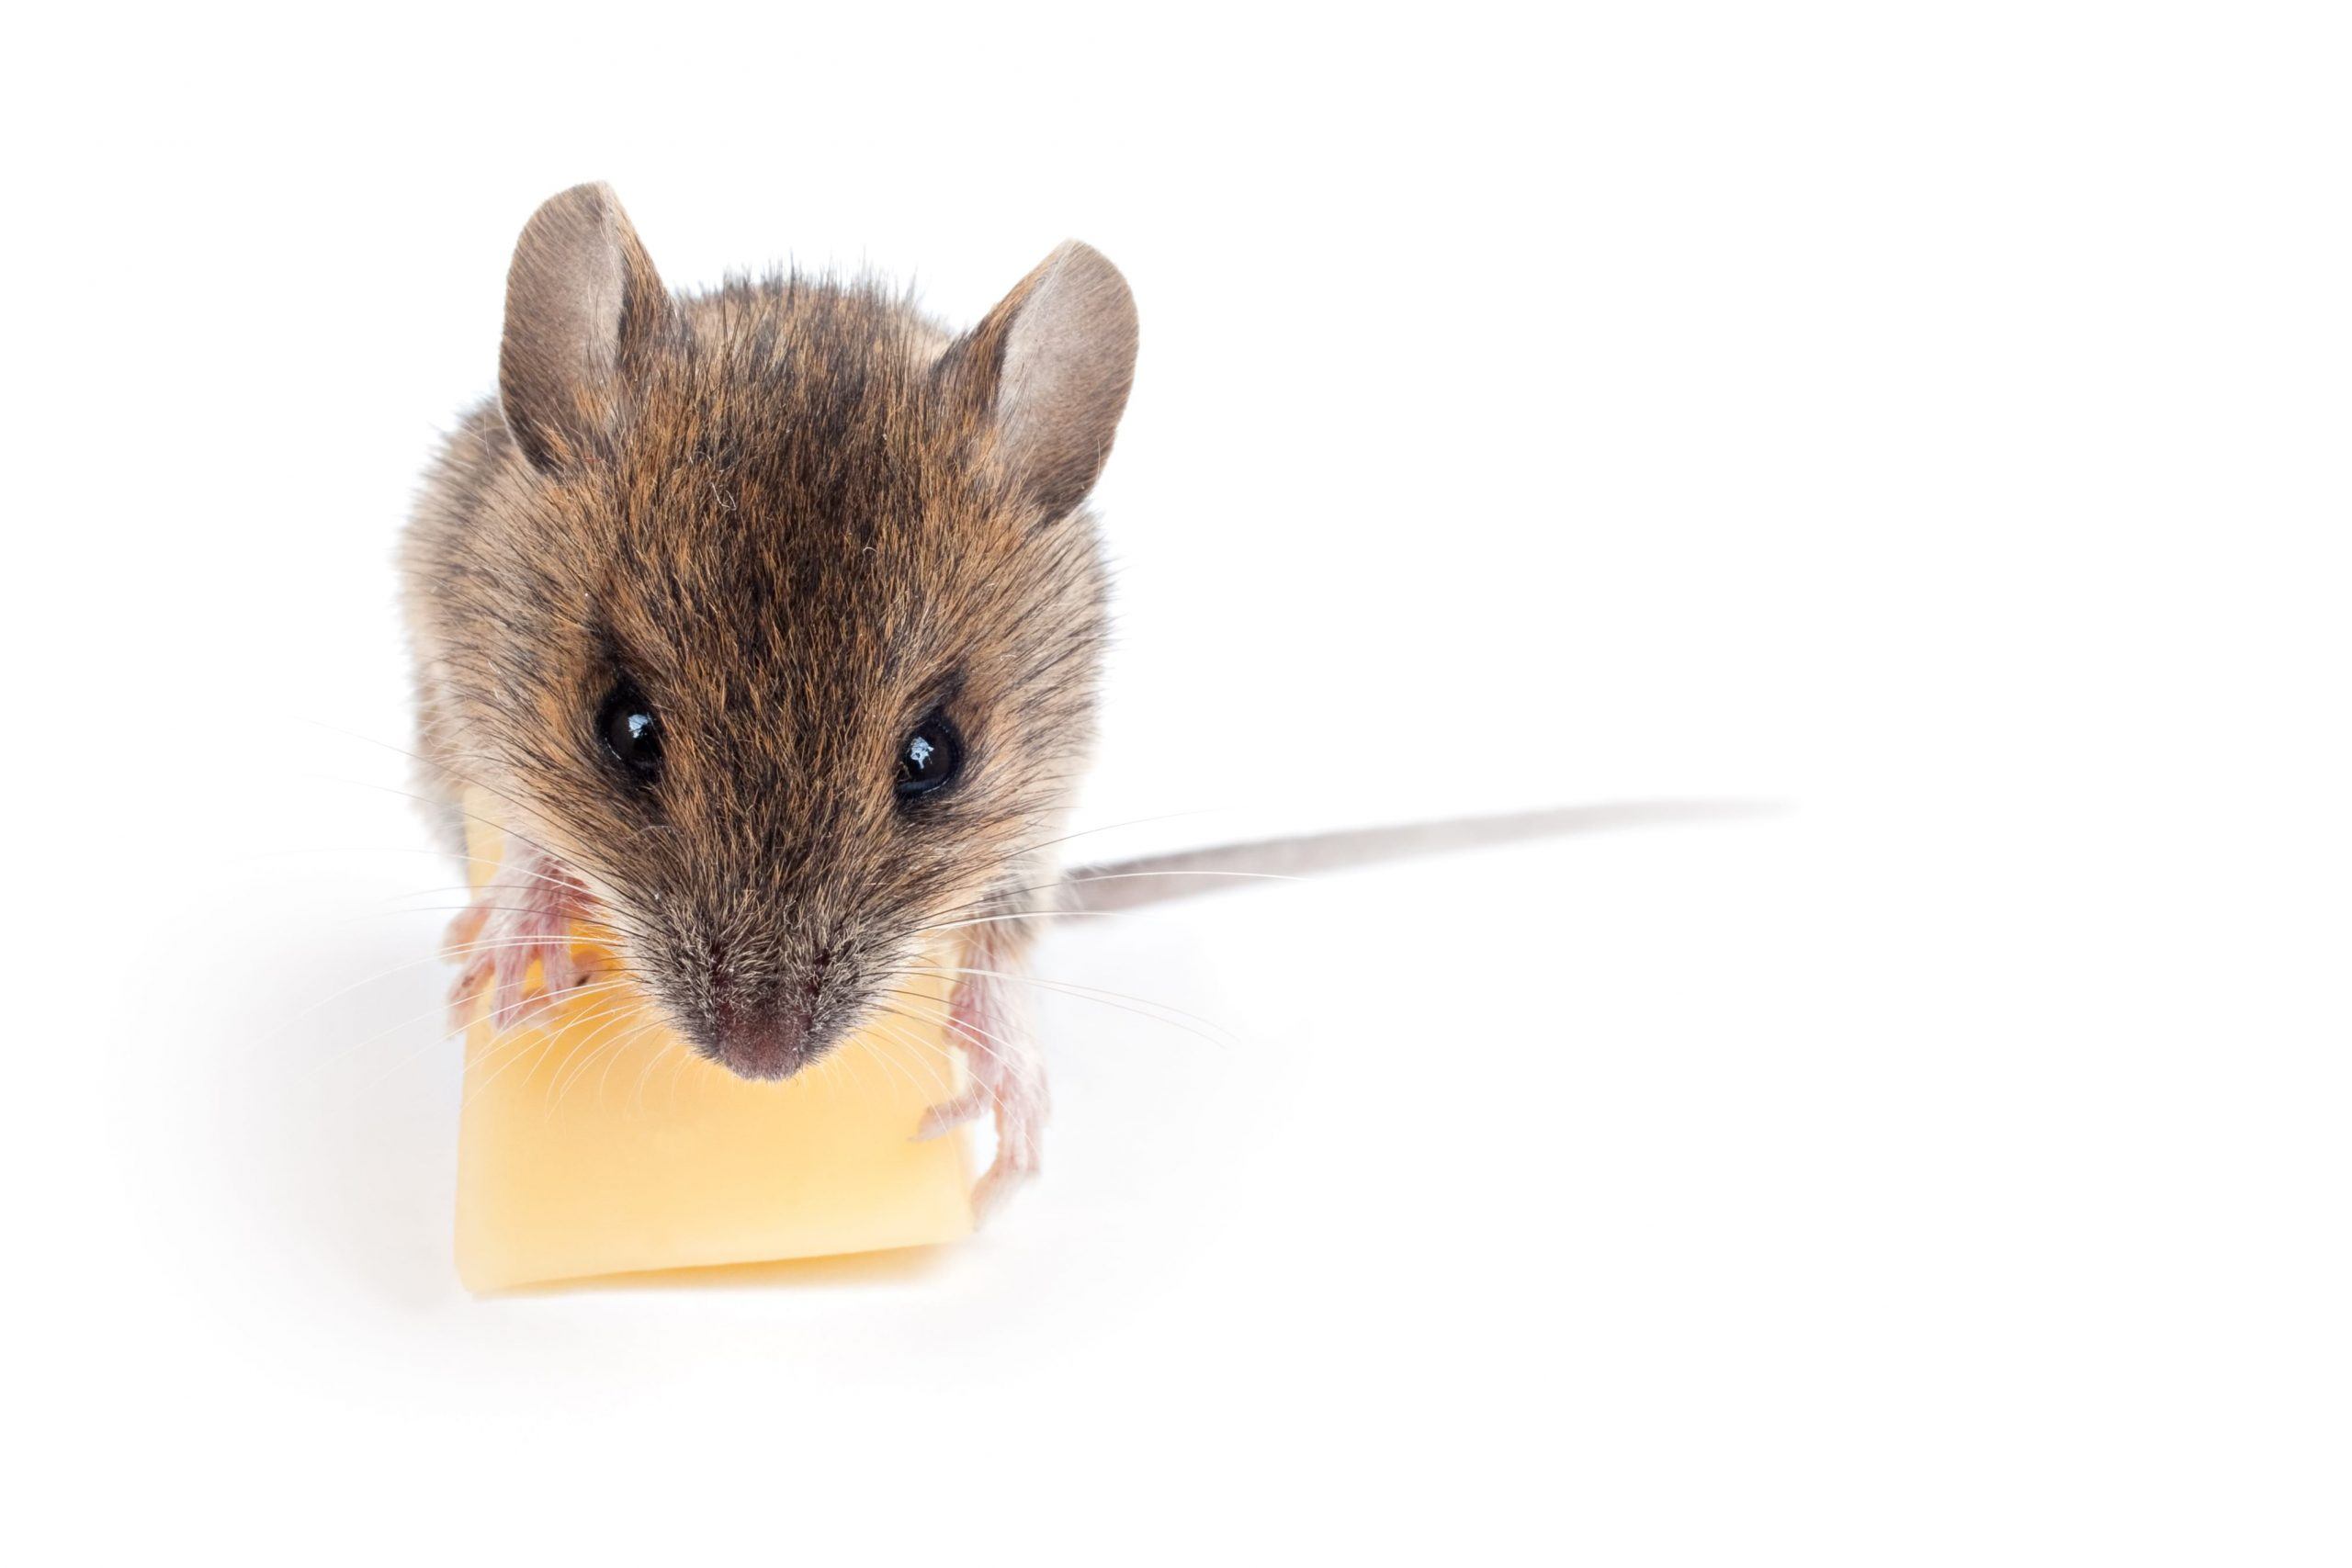 Mouse Myths that People Still Believe